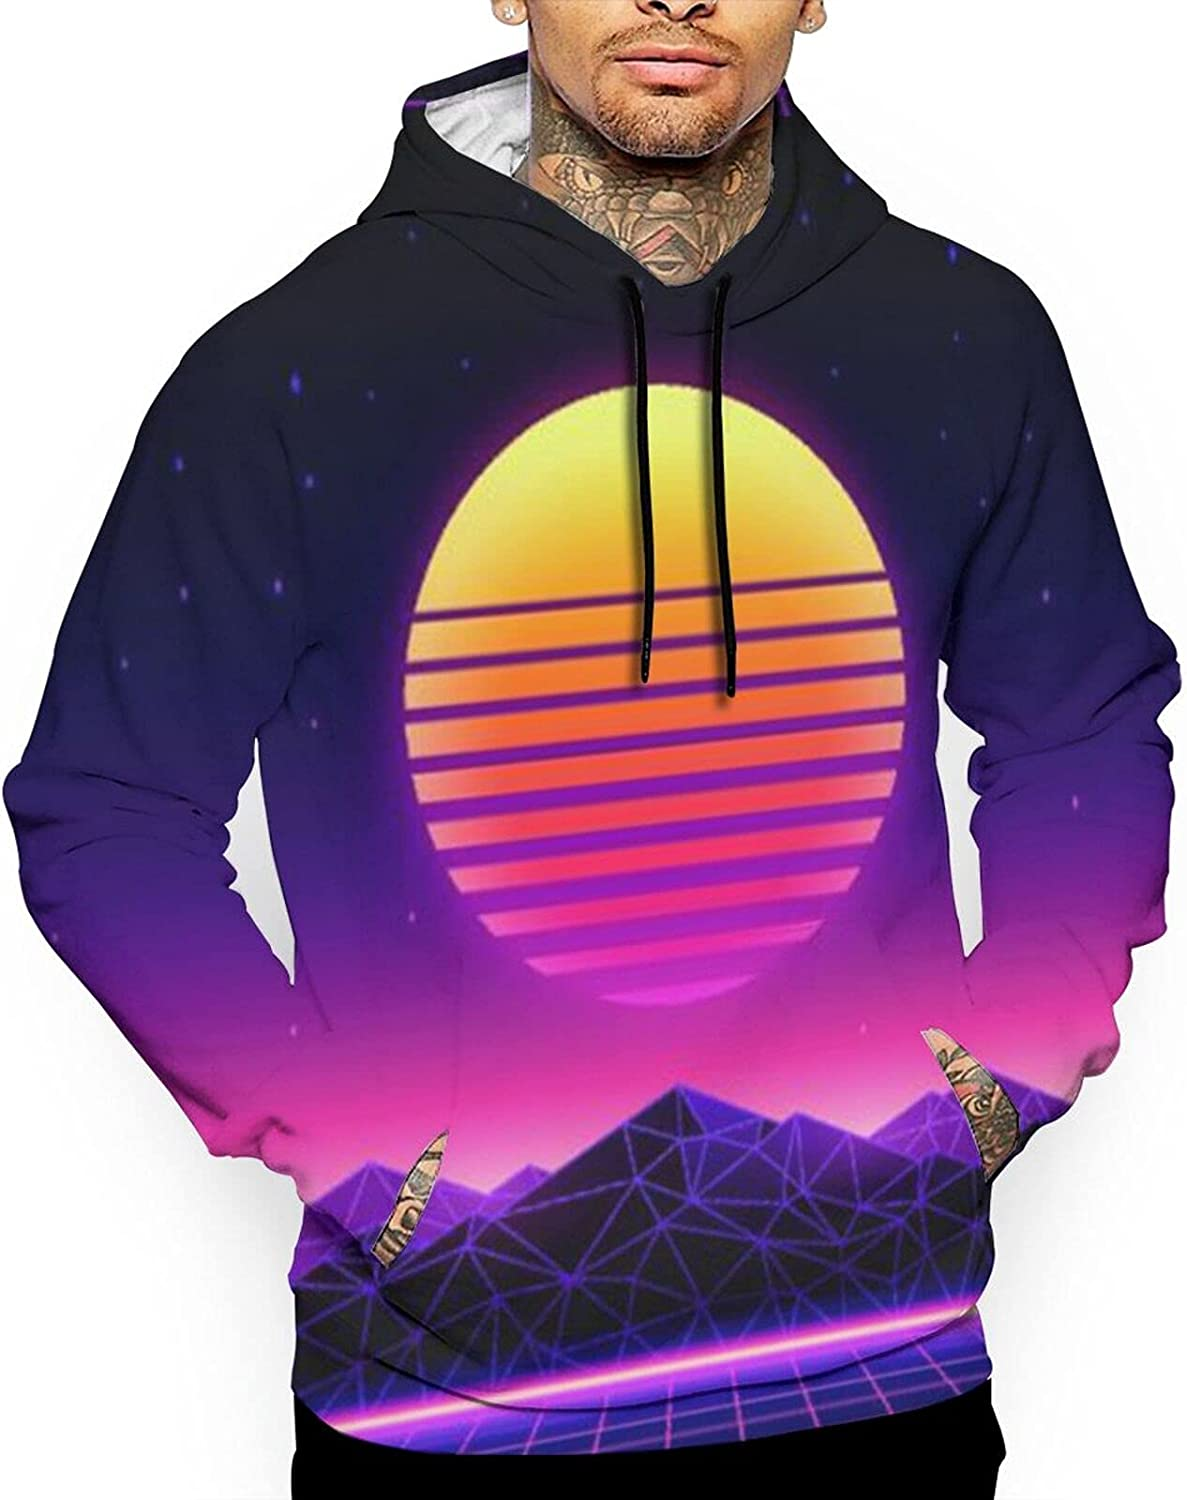 Men'S Hooded Sweatshirt Skin-Friendly Polyester Funny Creative Sweatshirts Tops For Vacations Holiday